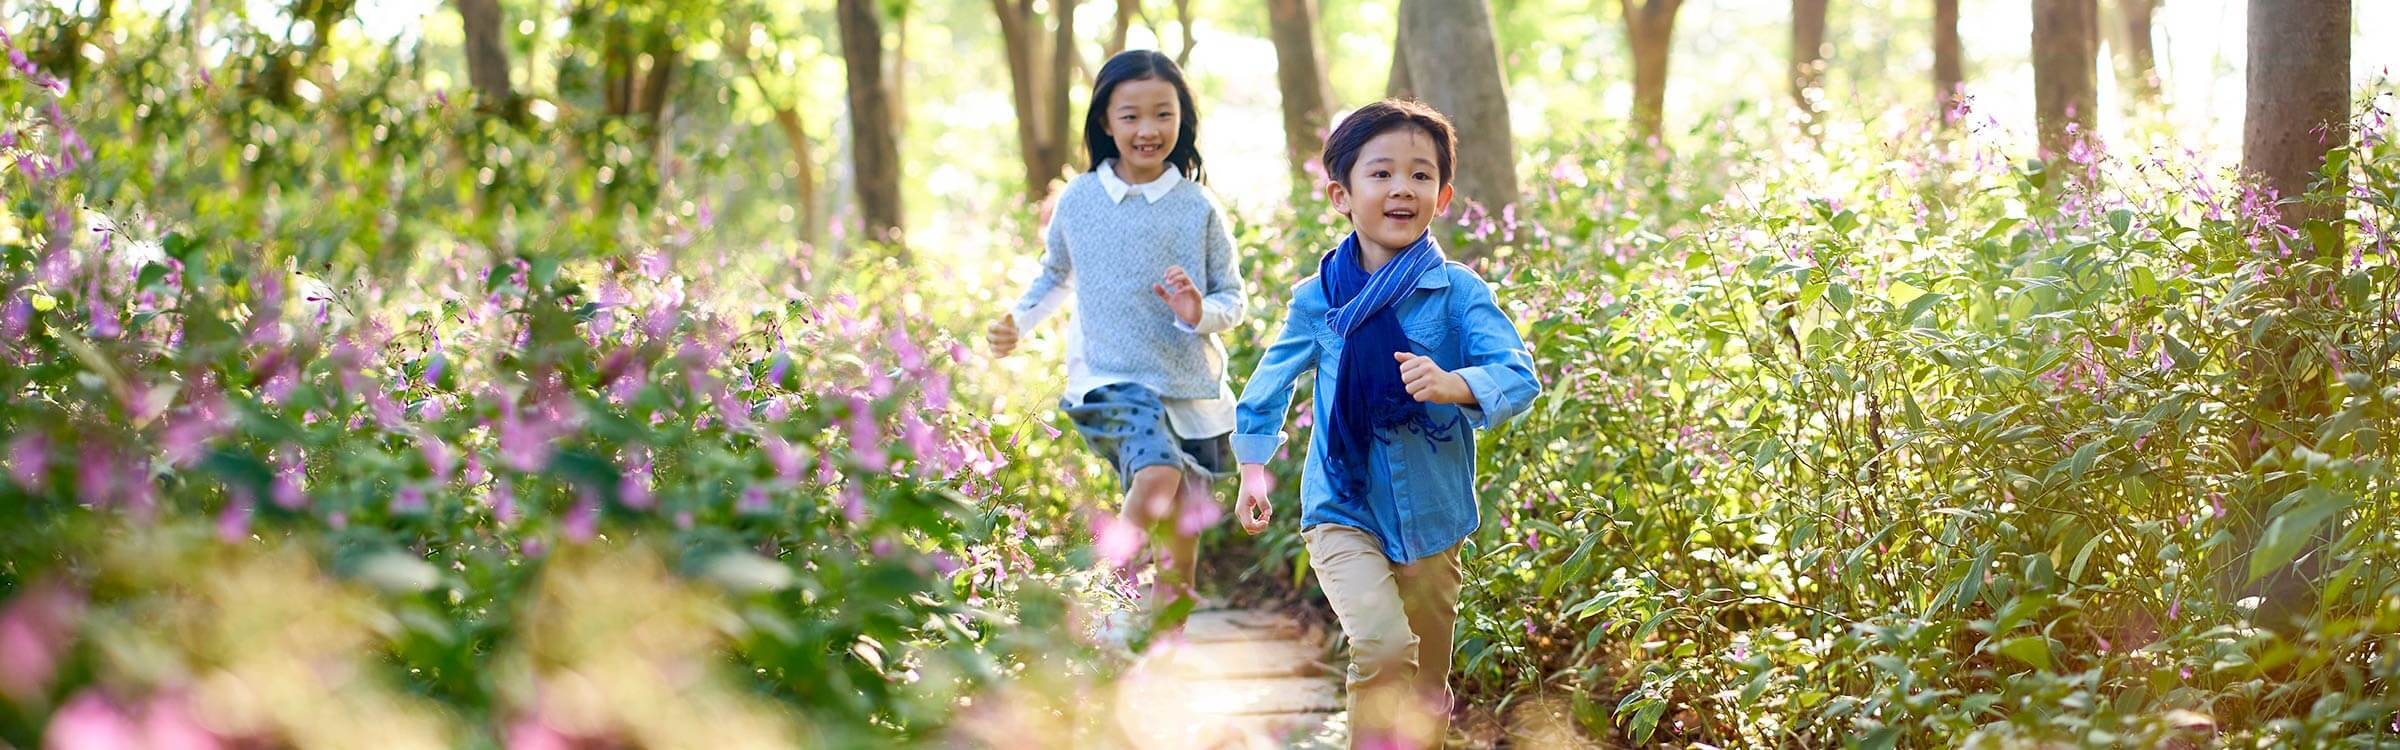 Happy Children Running In Forest